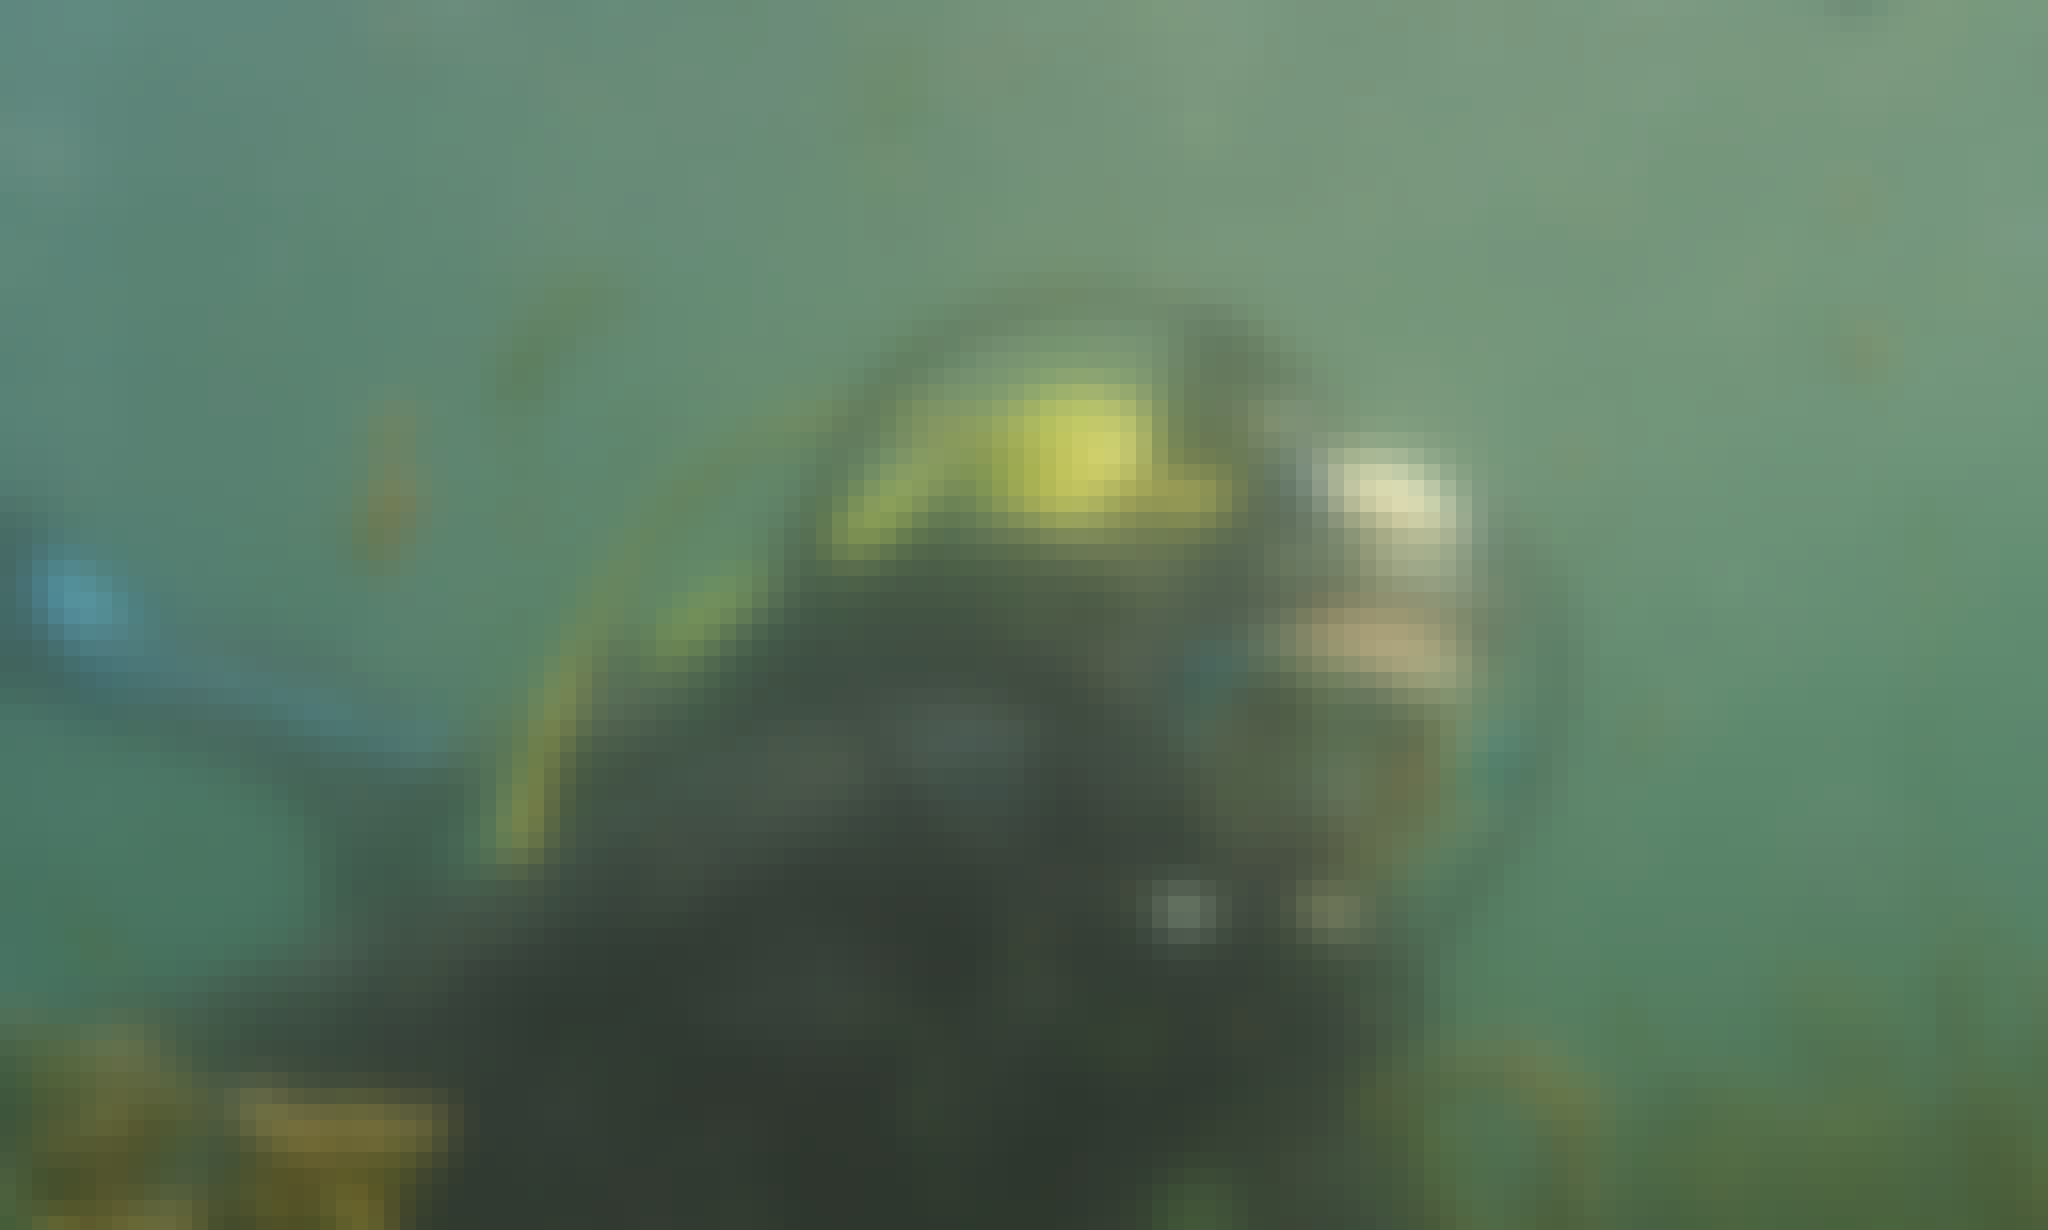 Join Us For Unforgettable Diving in Tata, Hungary!